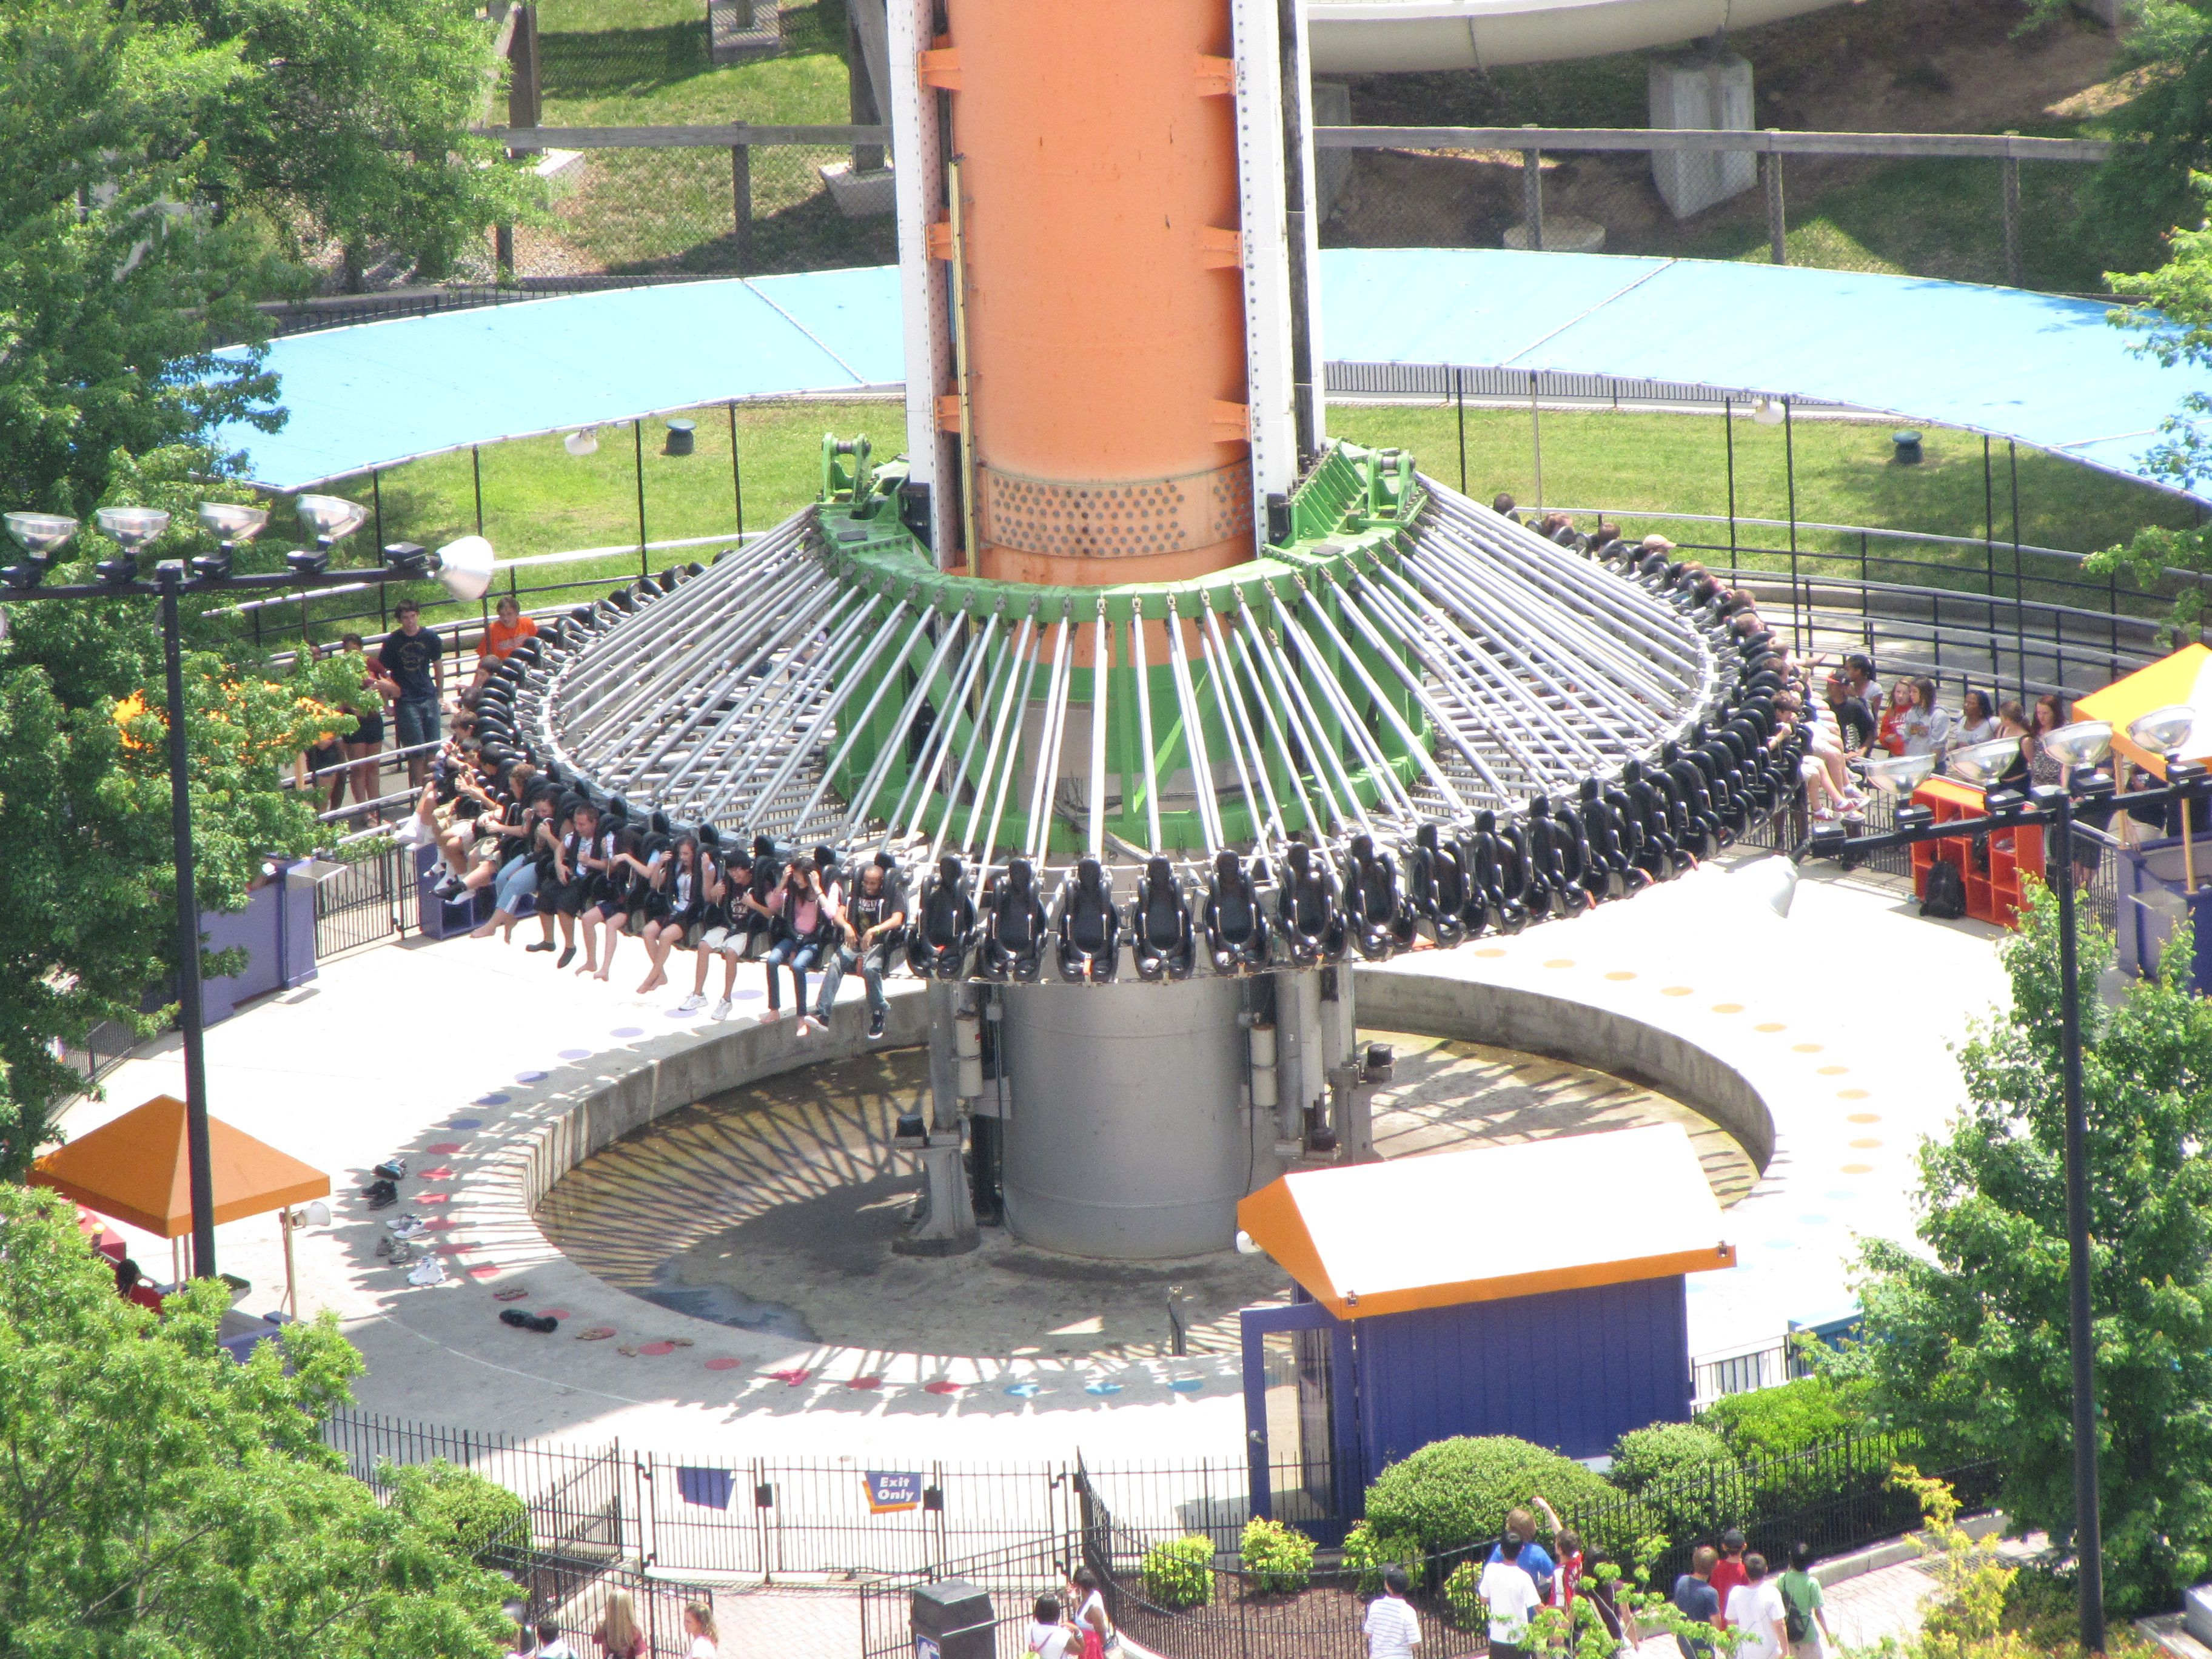 The Drop Tower at Kings Dominion approaches the bottom of its track, and enters the braking phase.